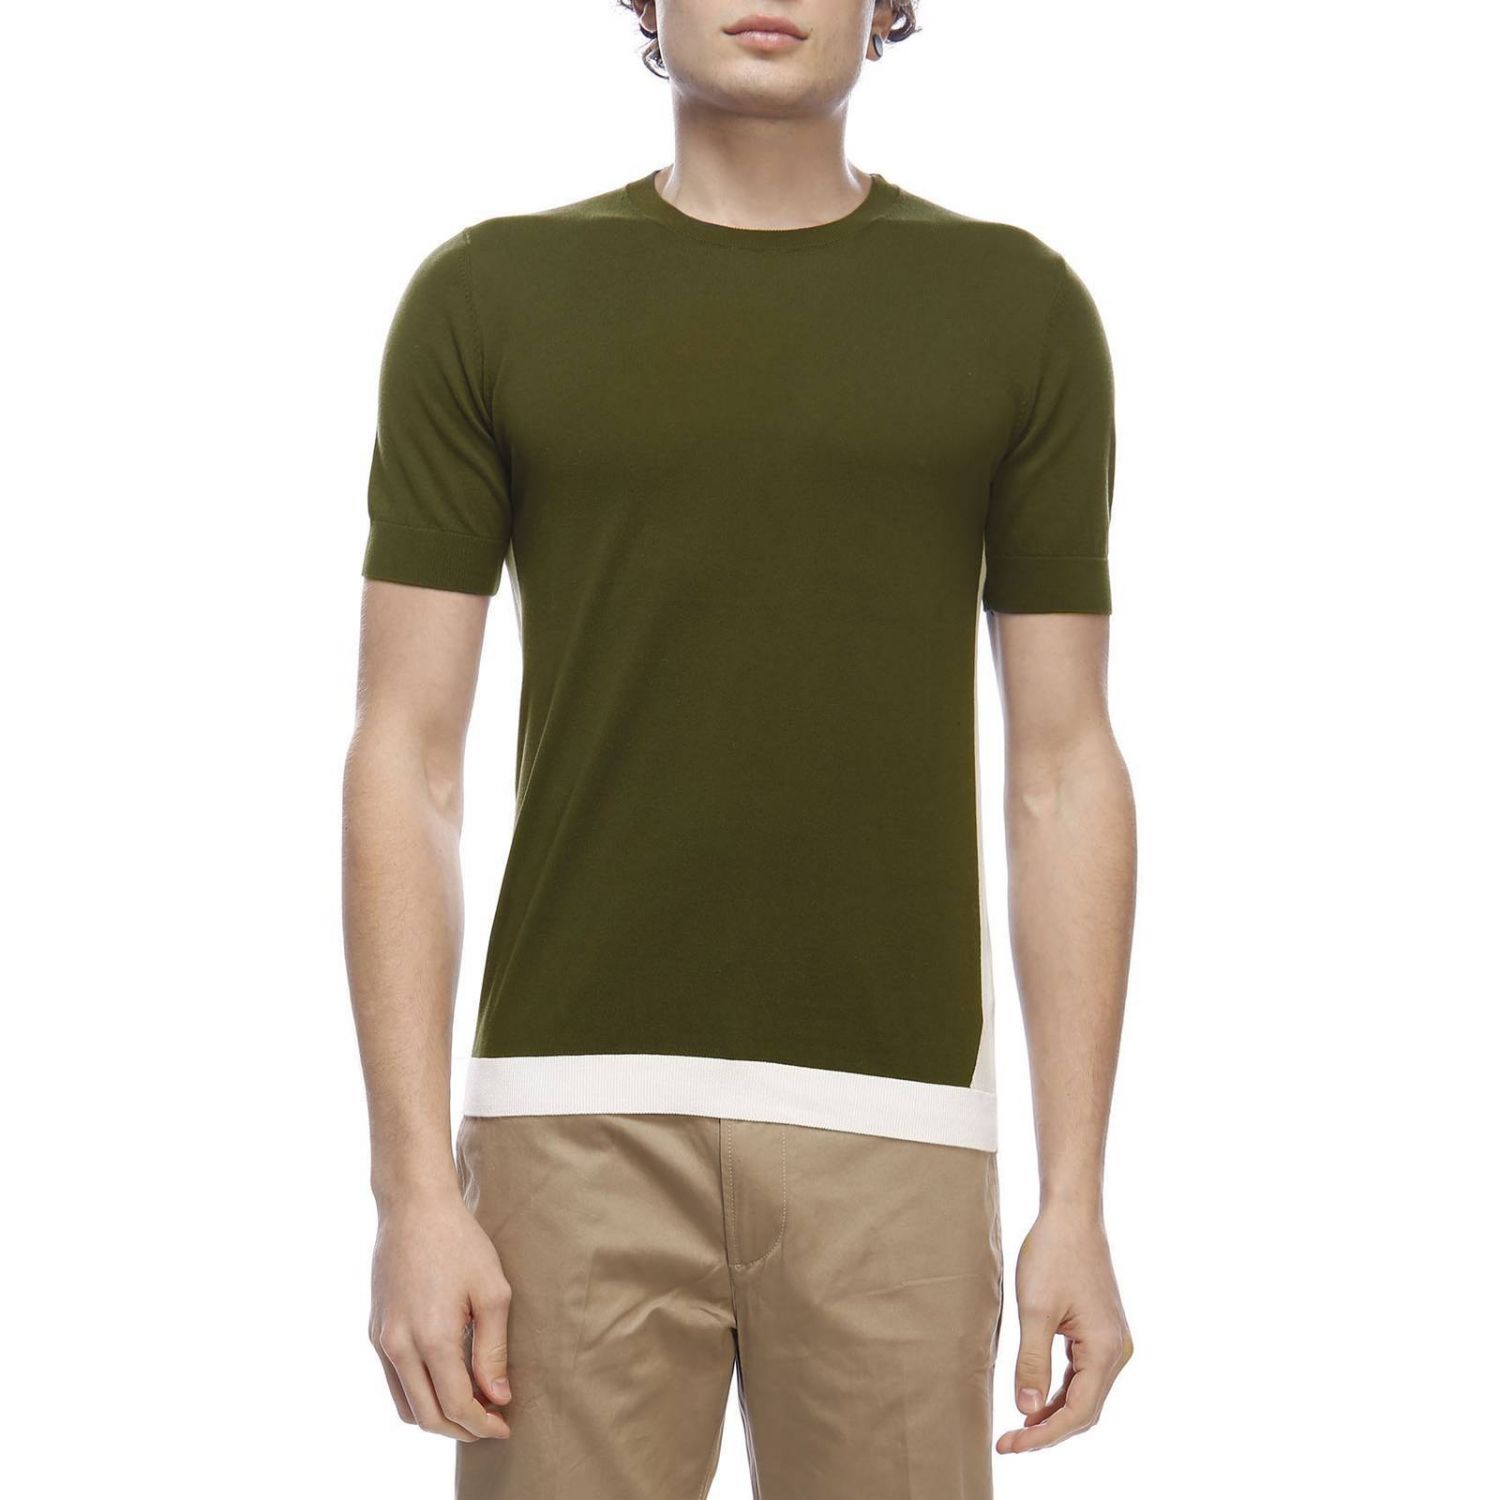 Pull homme Paolo Pecora vert militaire 1